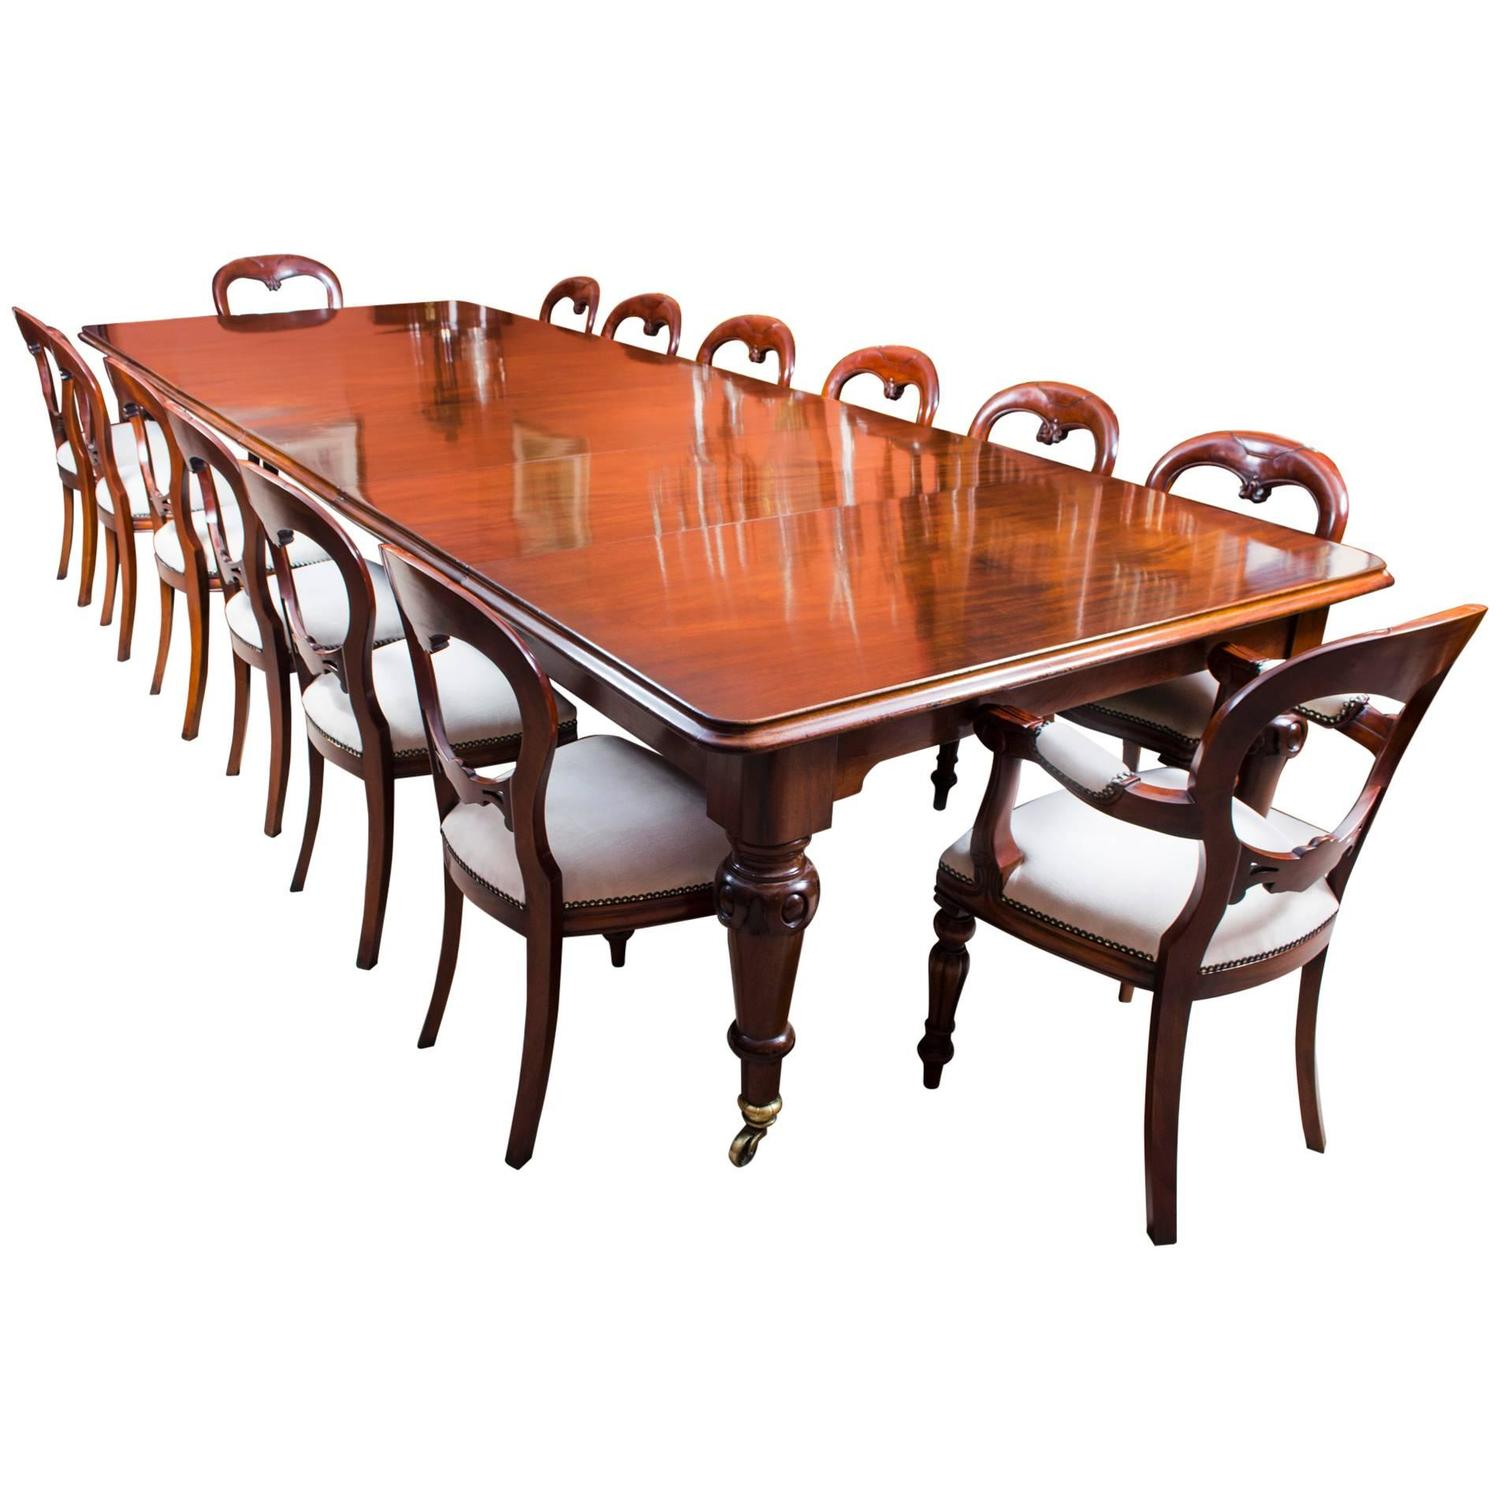 Victorian Dining Room Table: Antique Victorian Dining Table And 14 Chairs, Circa 1850